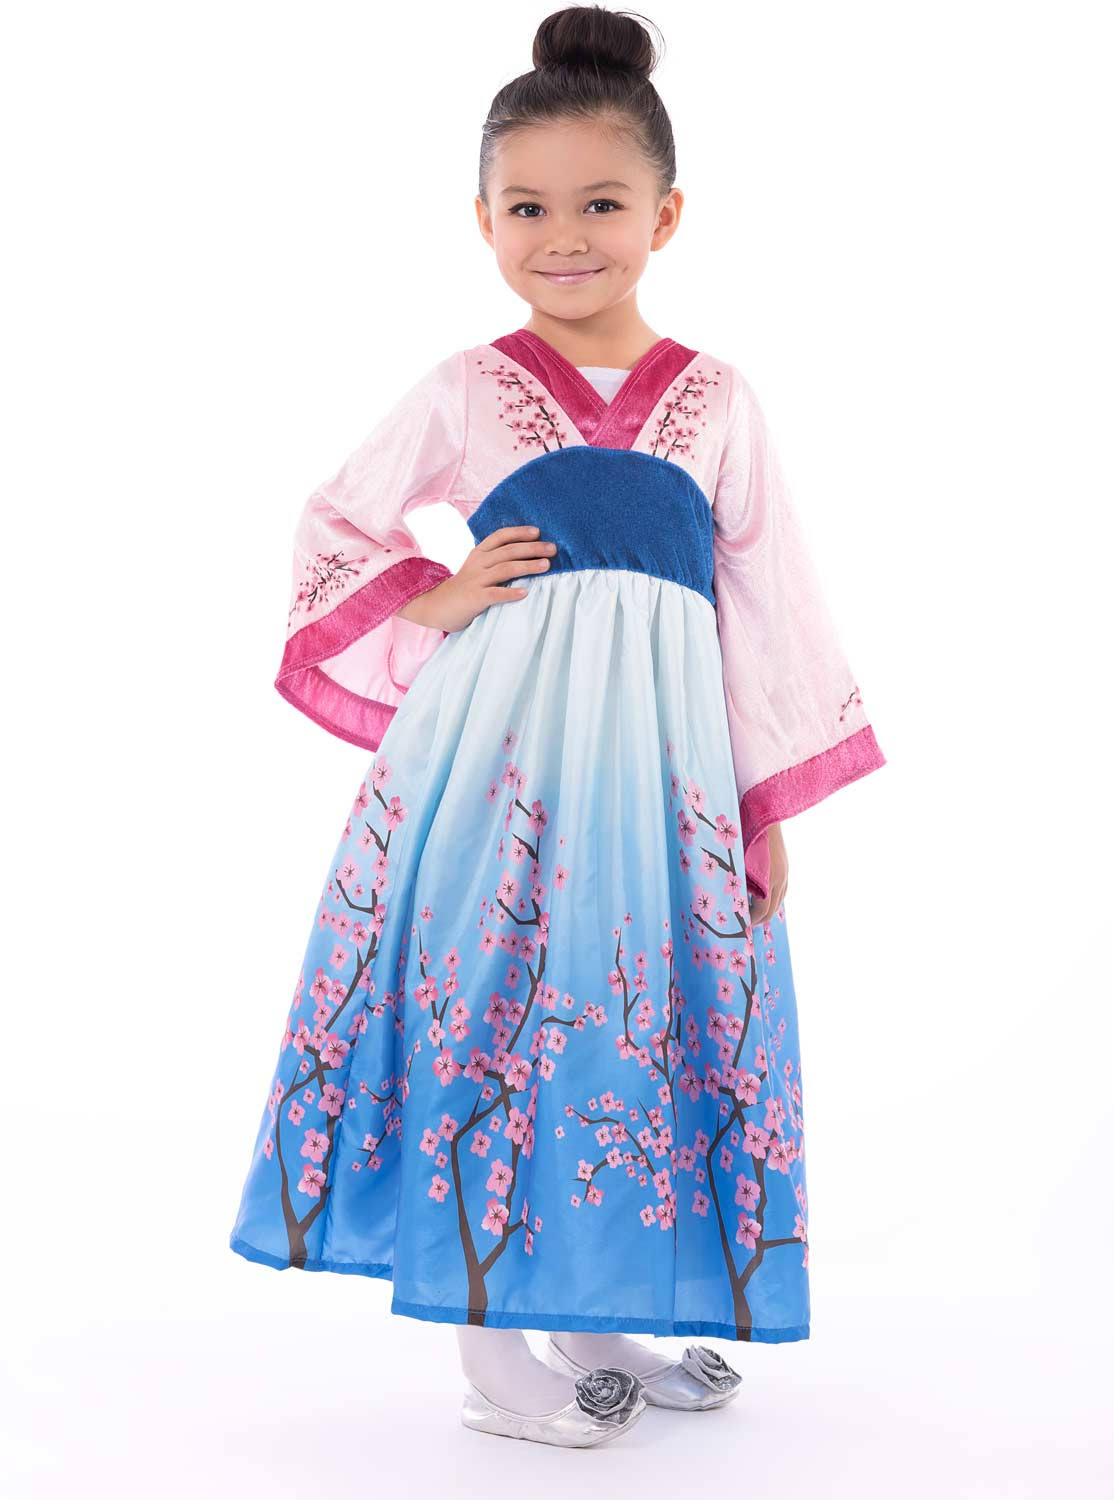 Little Adventures Asian Princess Dress Up Costume (Medium Age 3-5)